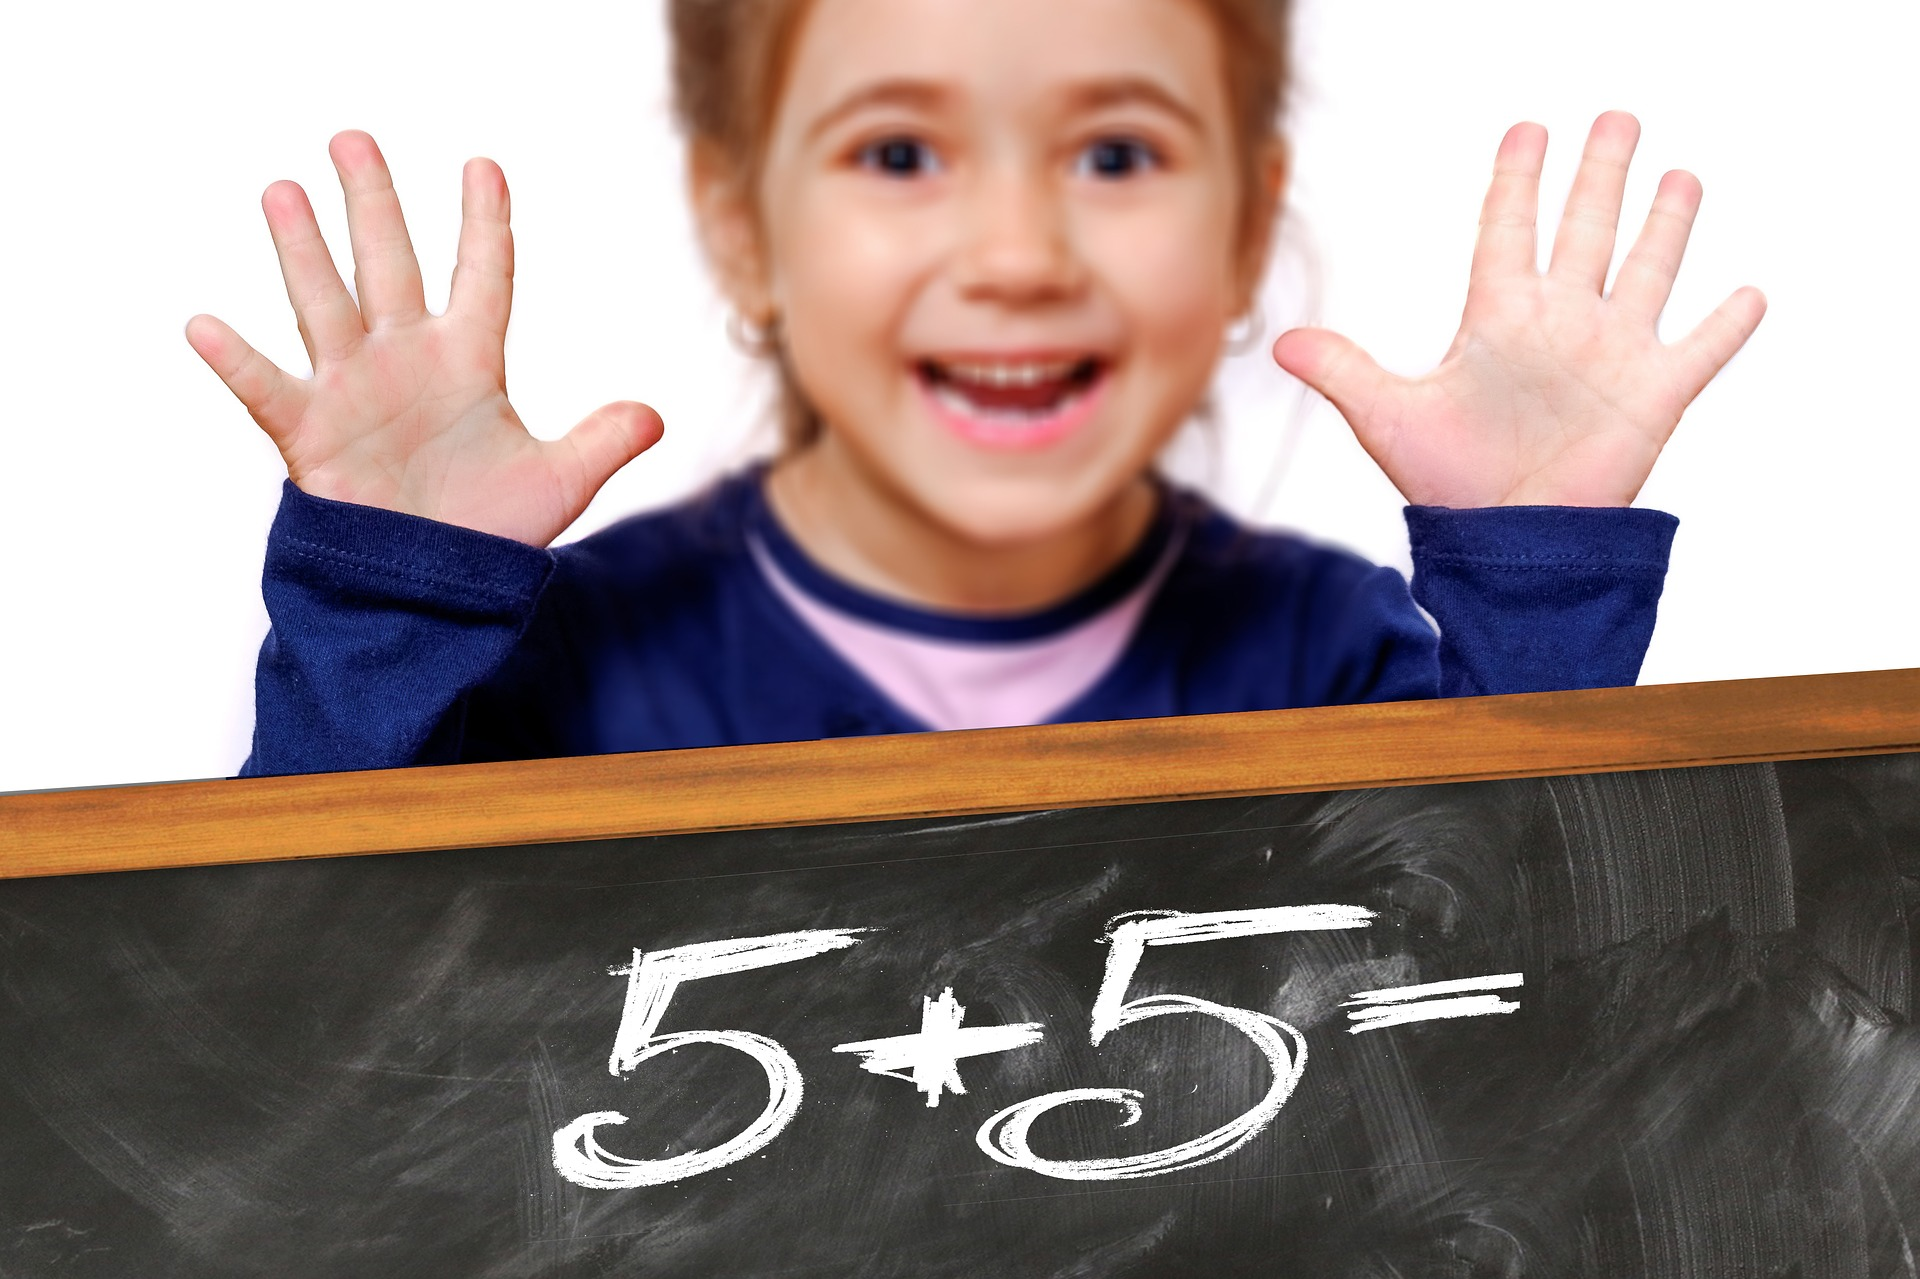 A Better Explanation for the Gender Gap in Math-Related Fields